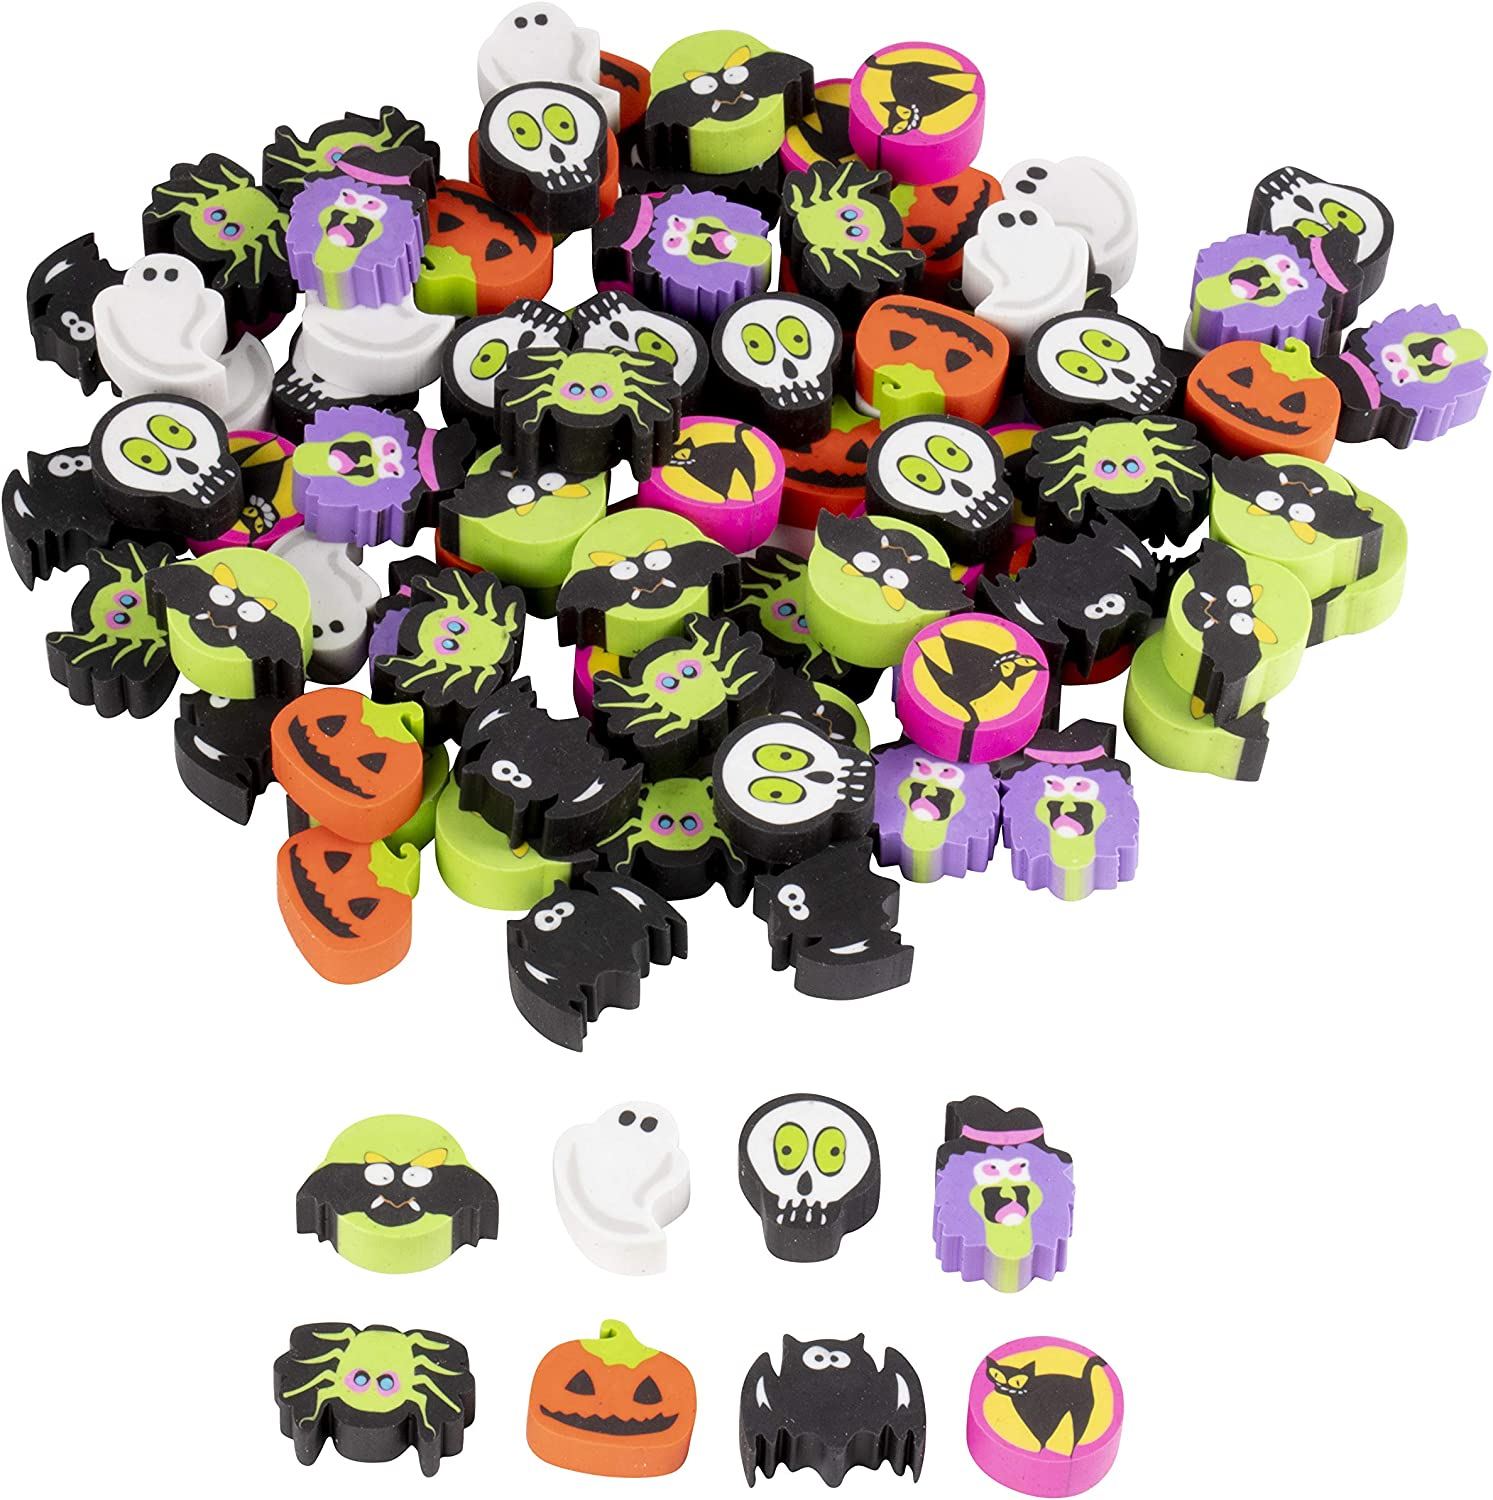 Classroom Rewards Trick-or-Treat 8 Assorted Designs 1.3 x 1.1 x 0.5 Inches 100-Pack Mini Eraser for Kids Giveaways Carnival Prizes Goodie Bags Halloween Party Favors